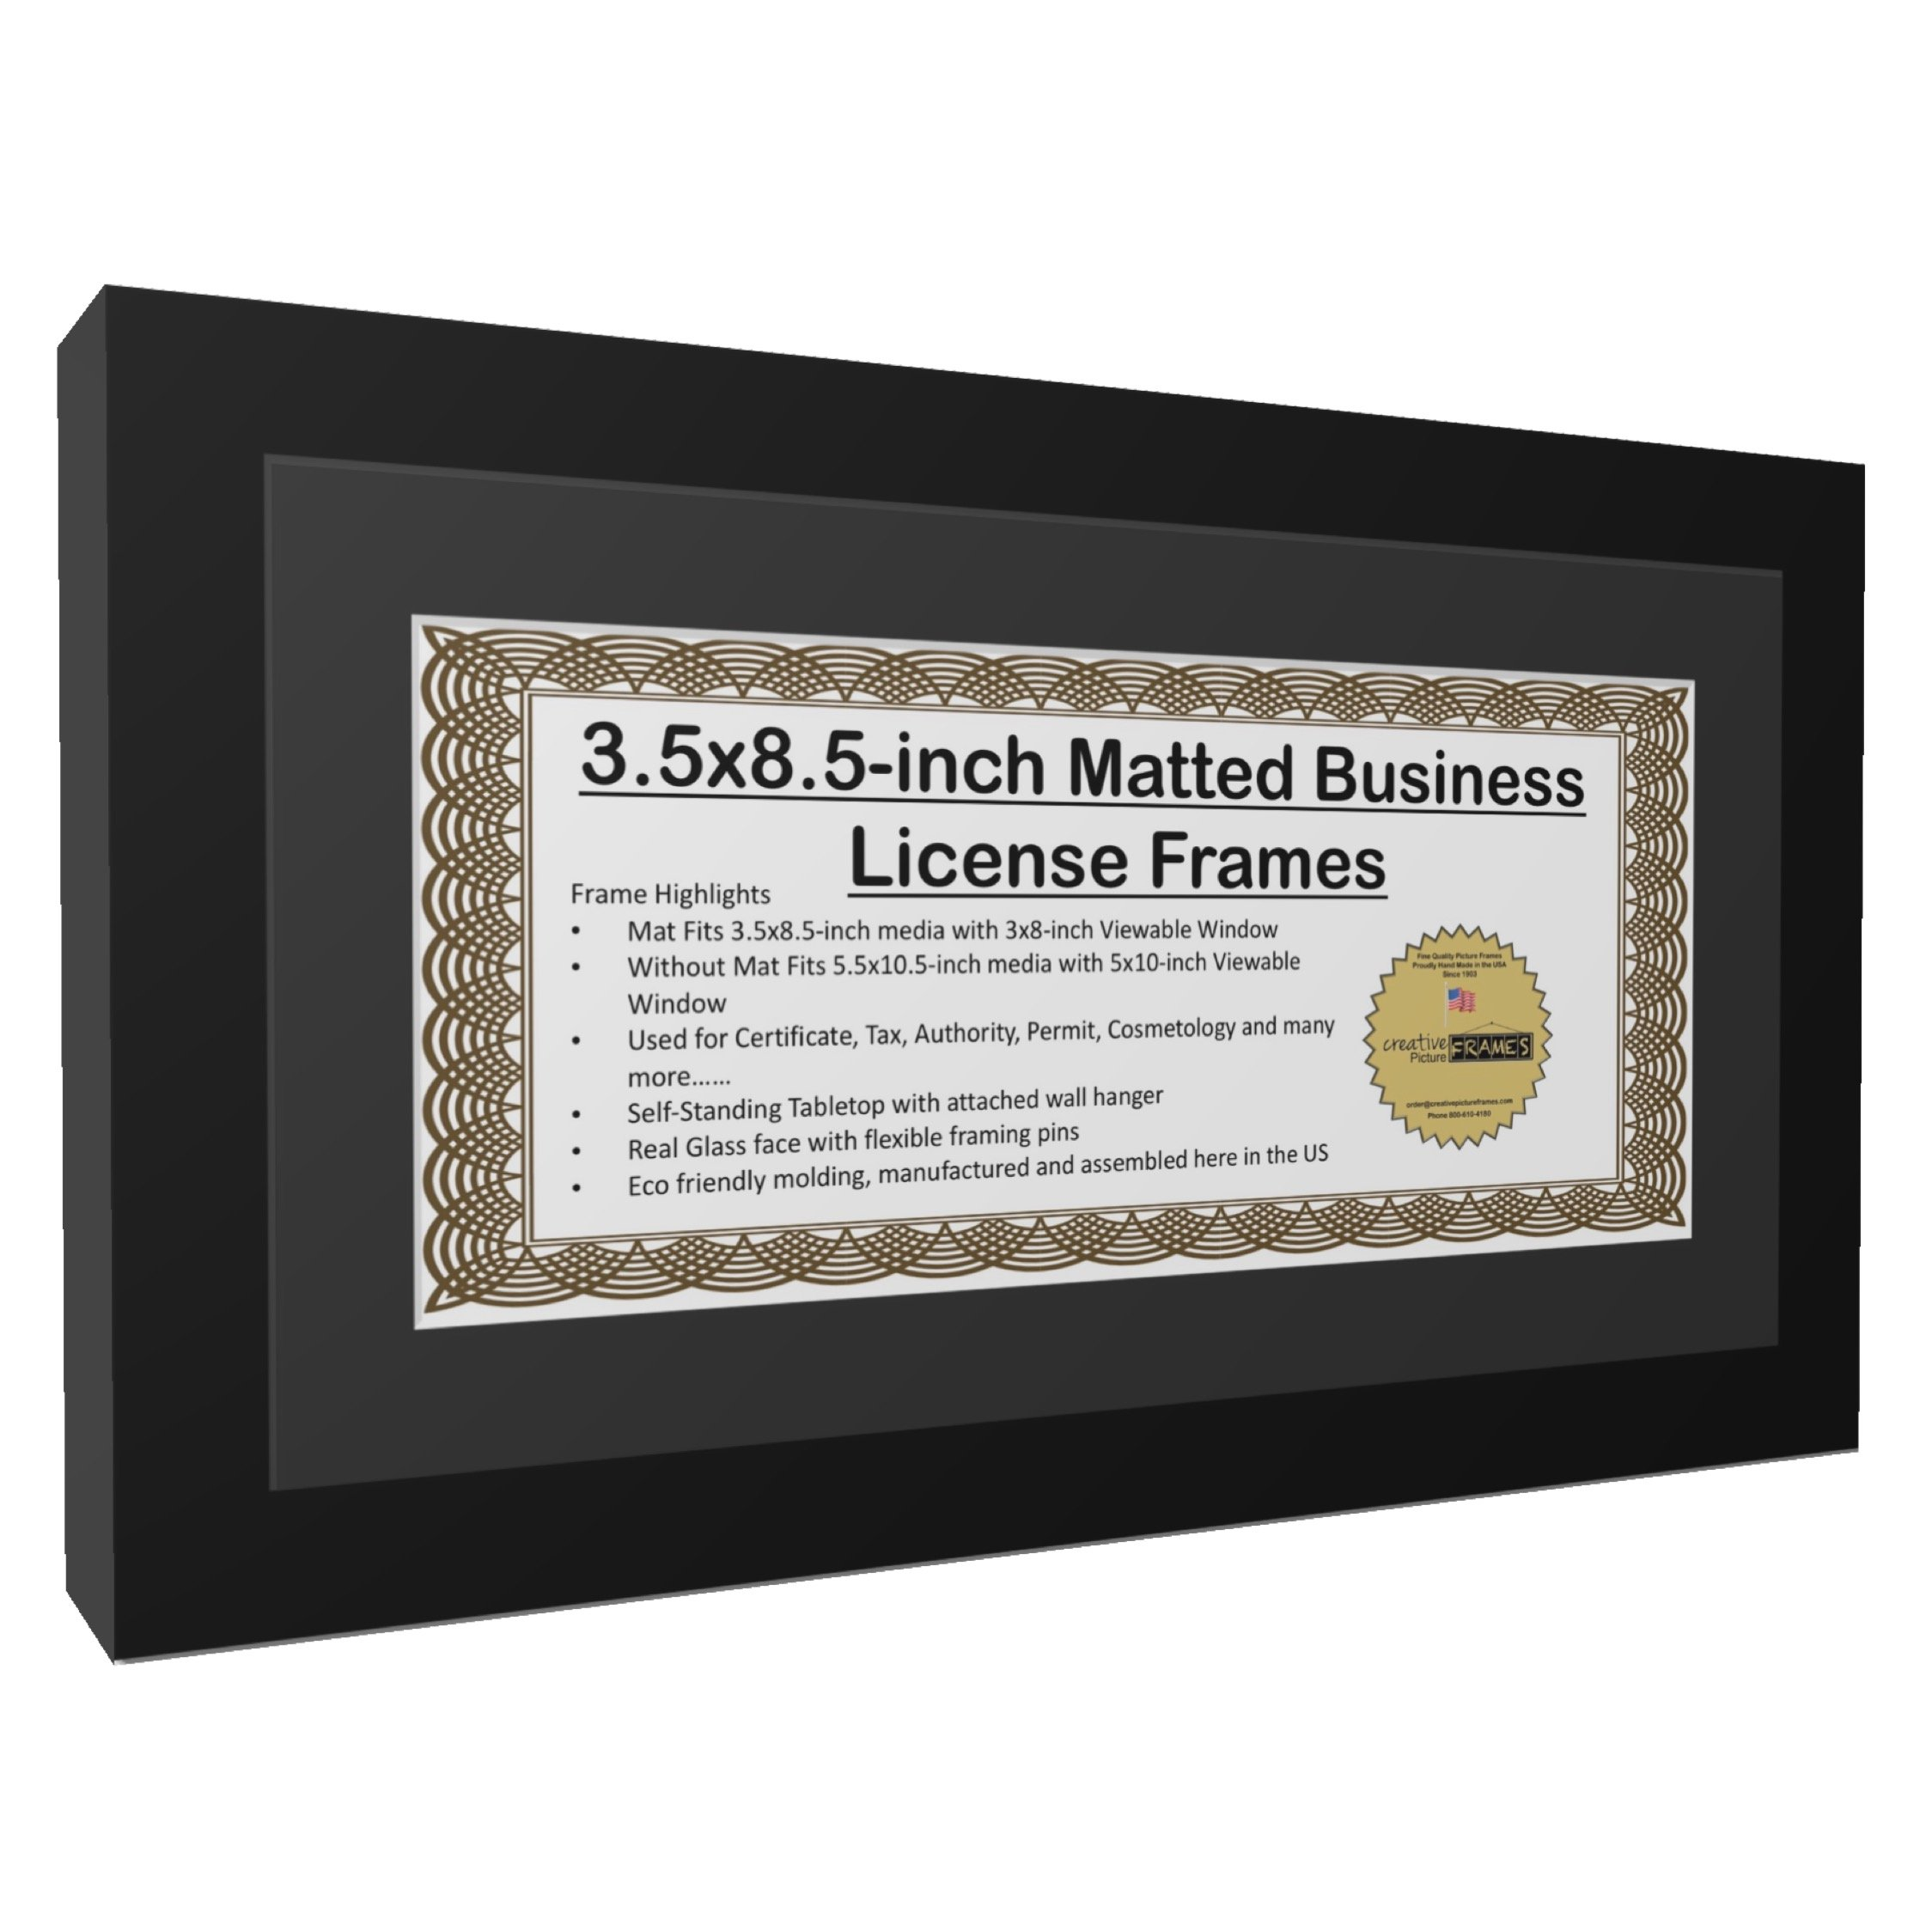 CreativePF [5.5x10.5bk] Business License Frame 3.5 by 8.5-inch Self ...